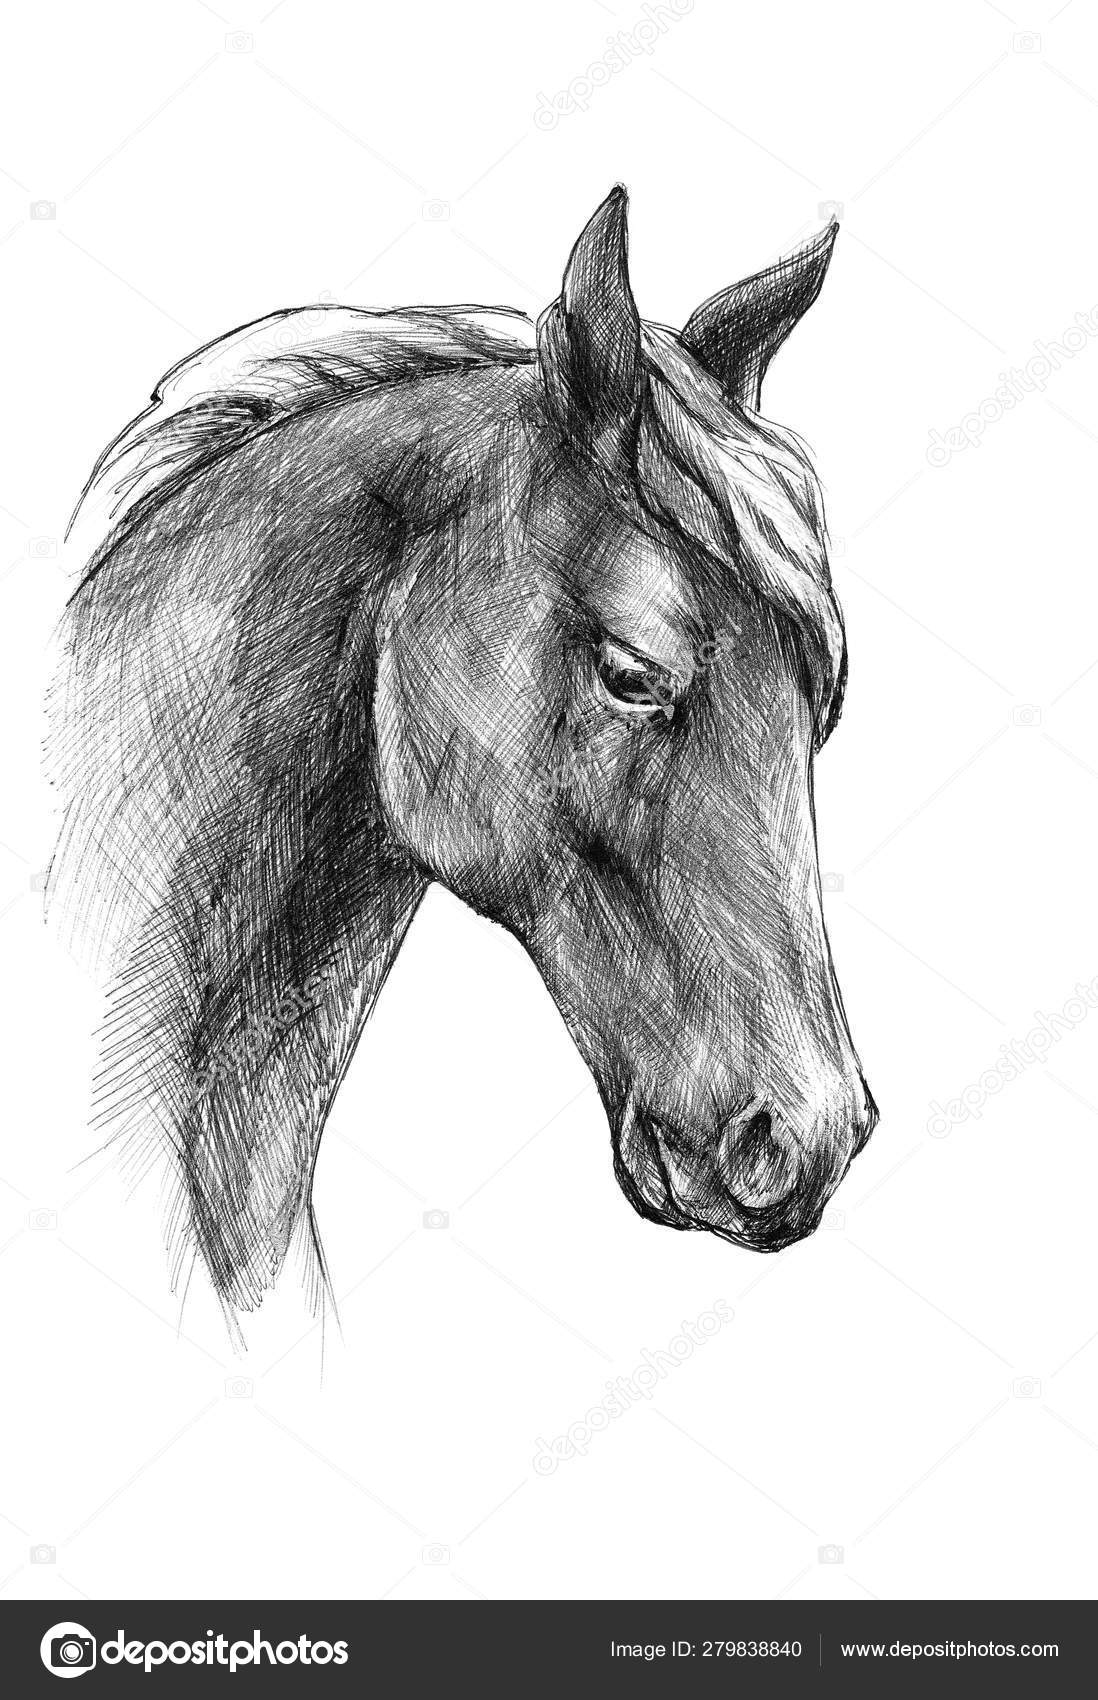 Sketch A Horse Head Black And White Drawing Stock Photo C Vensk 279838840